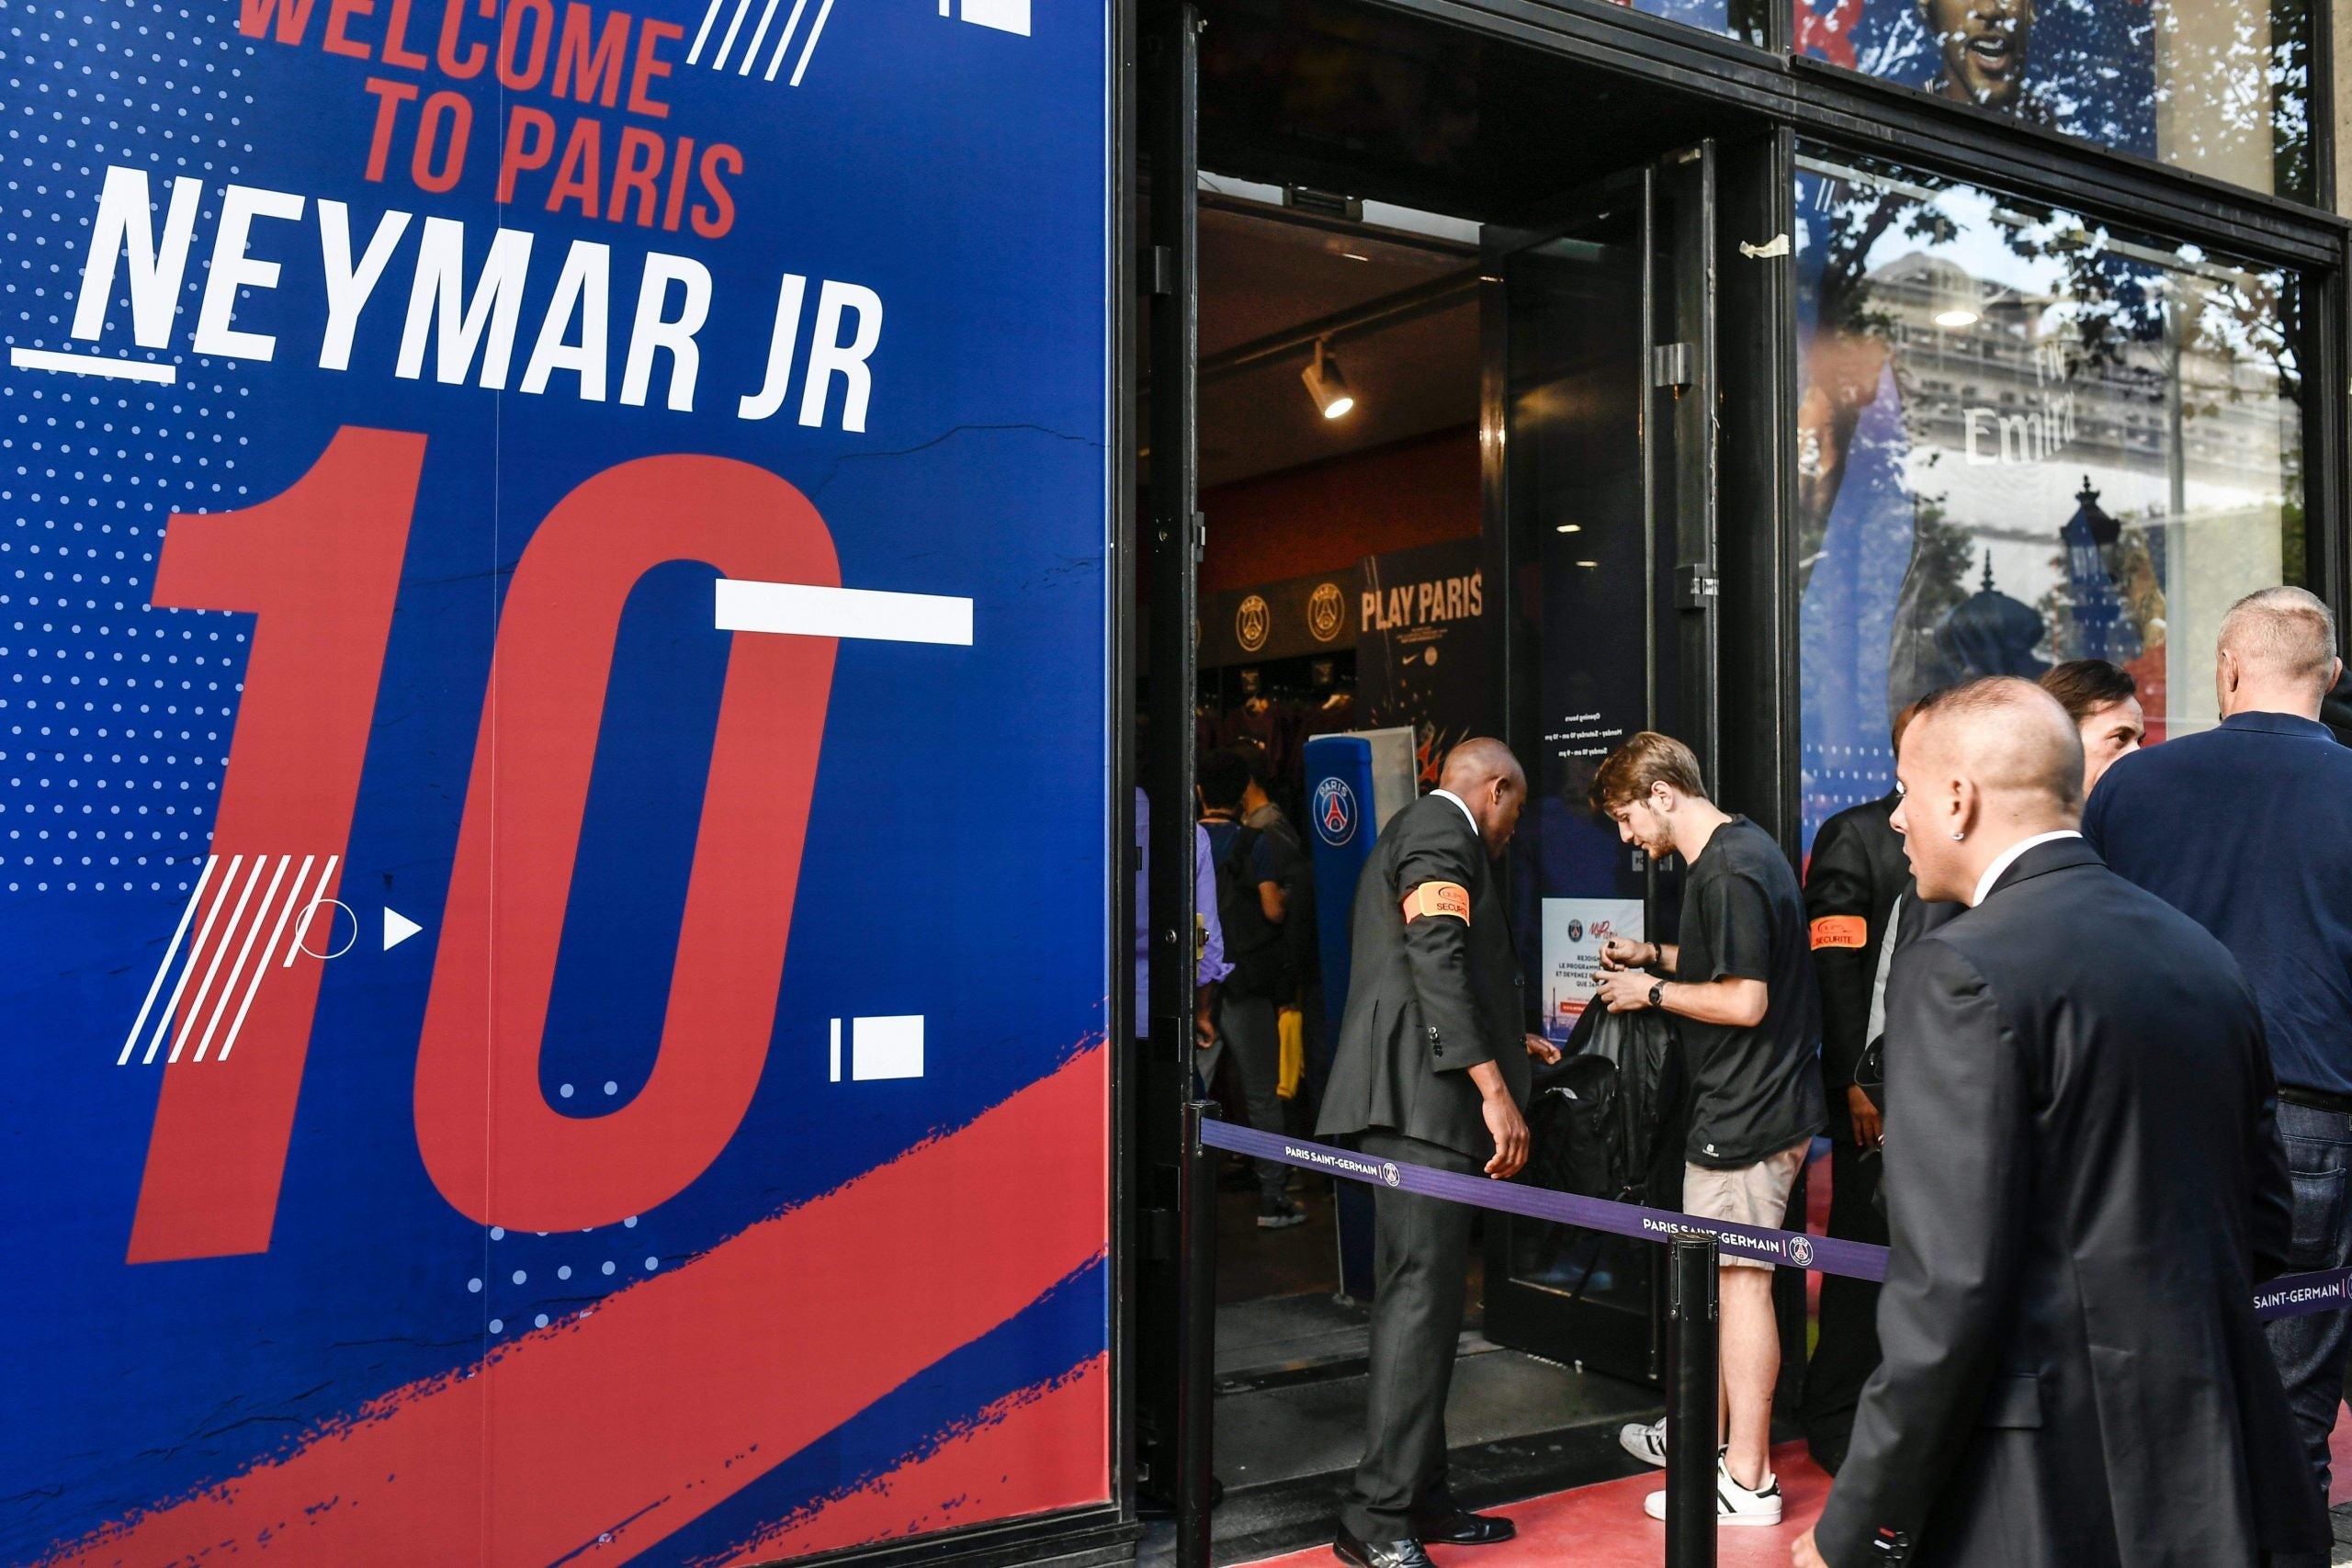 The cunning politicisation of Neymar's move to PSG